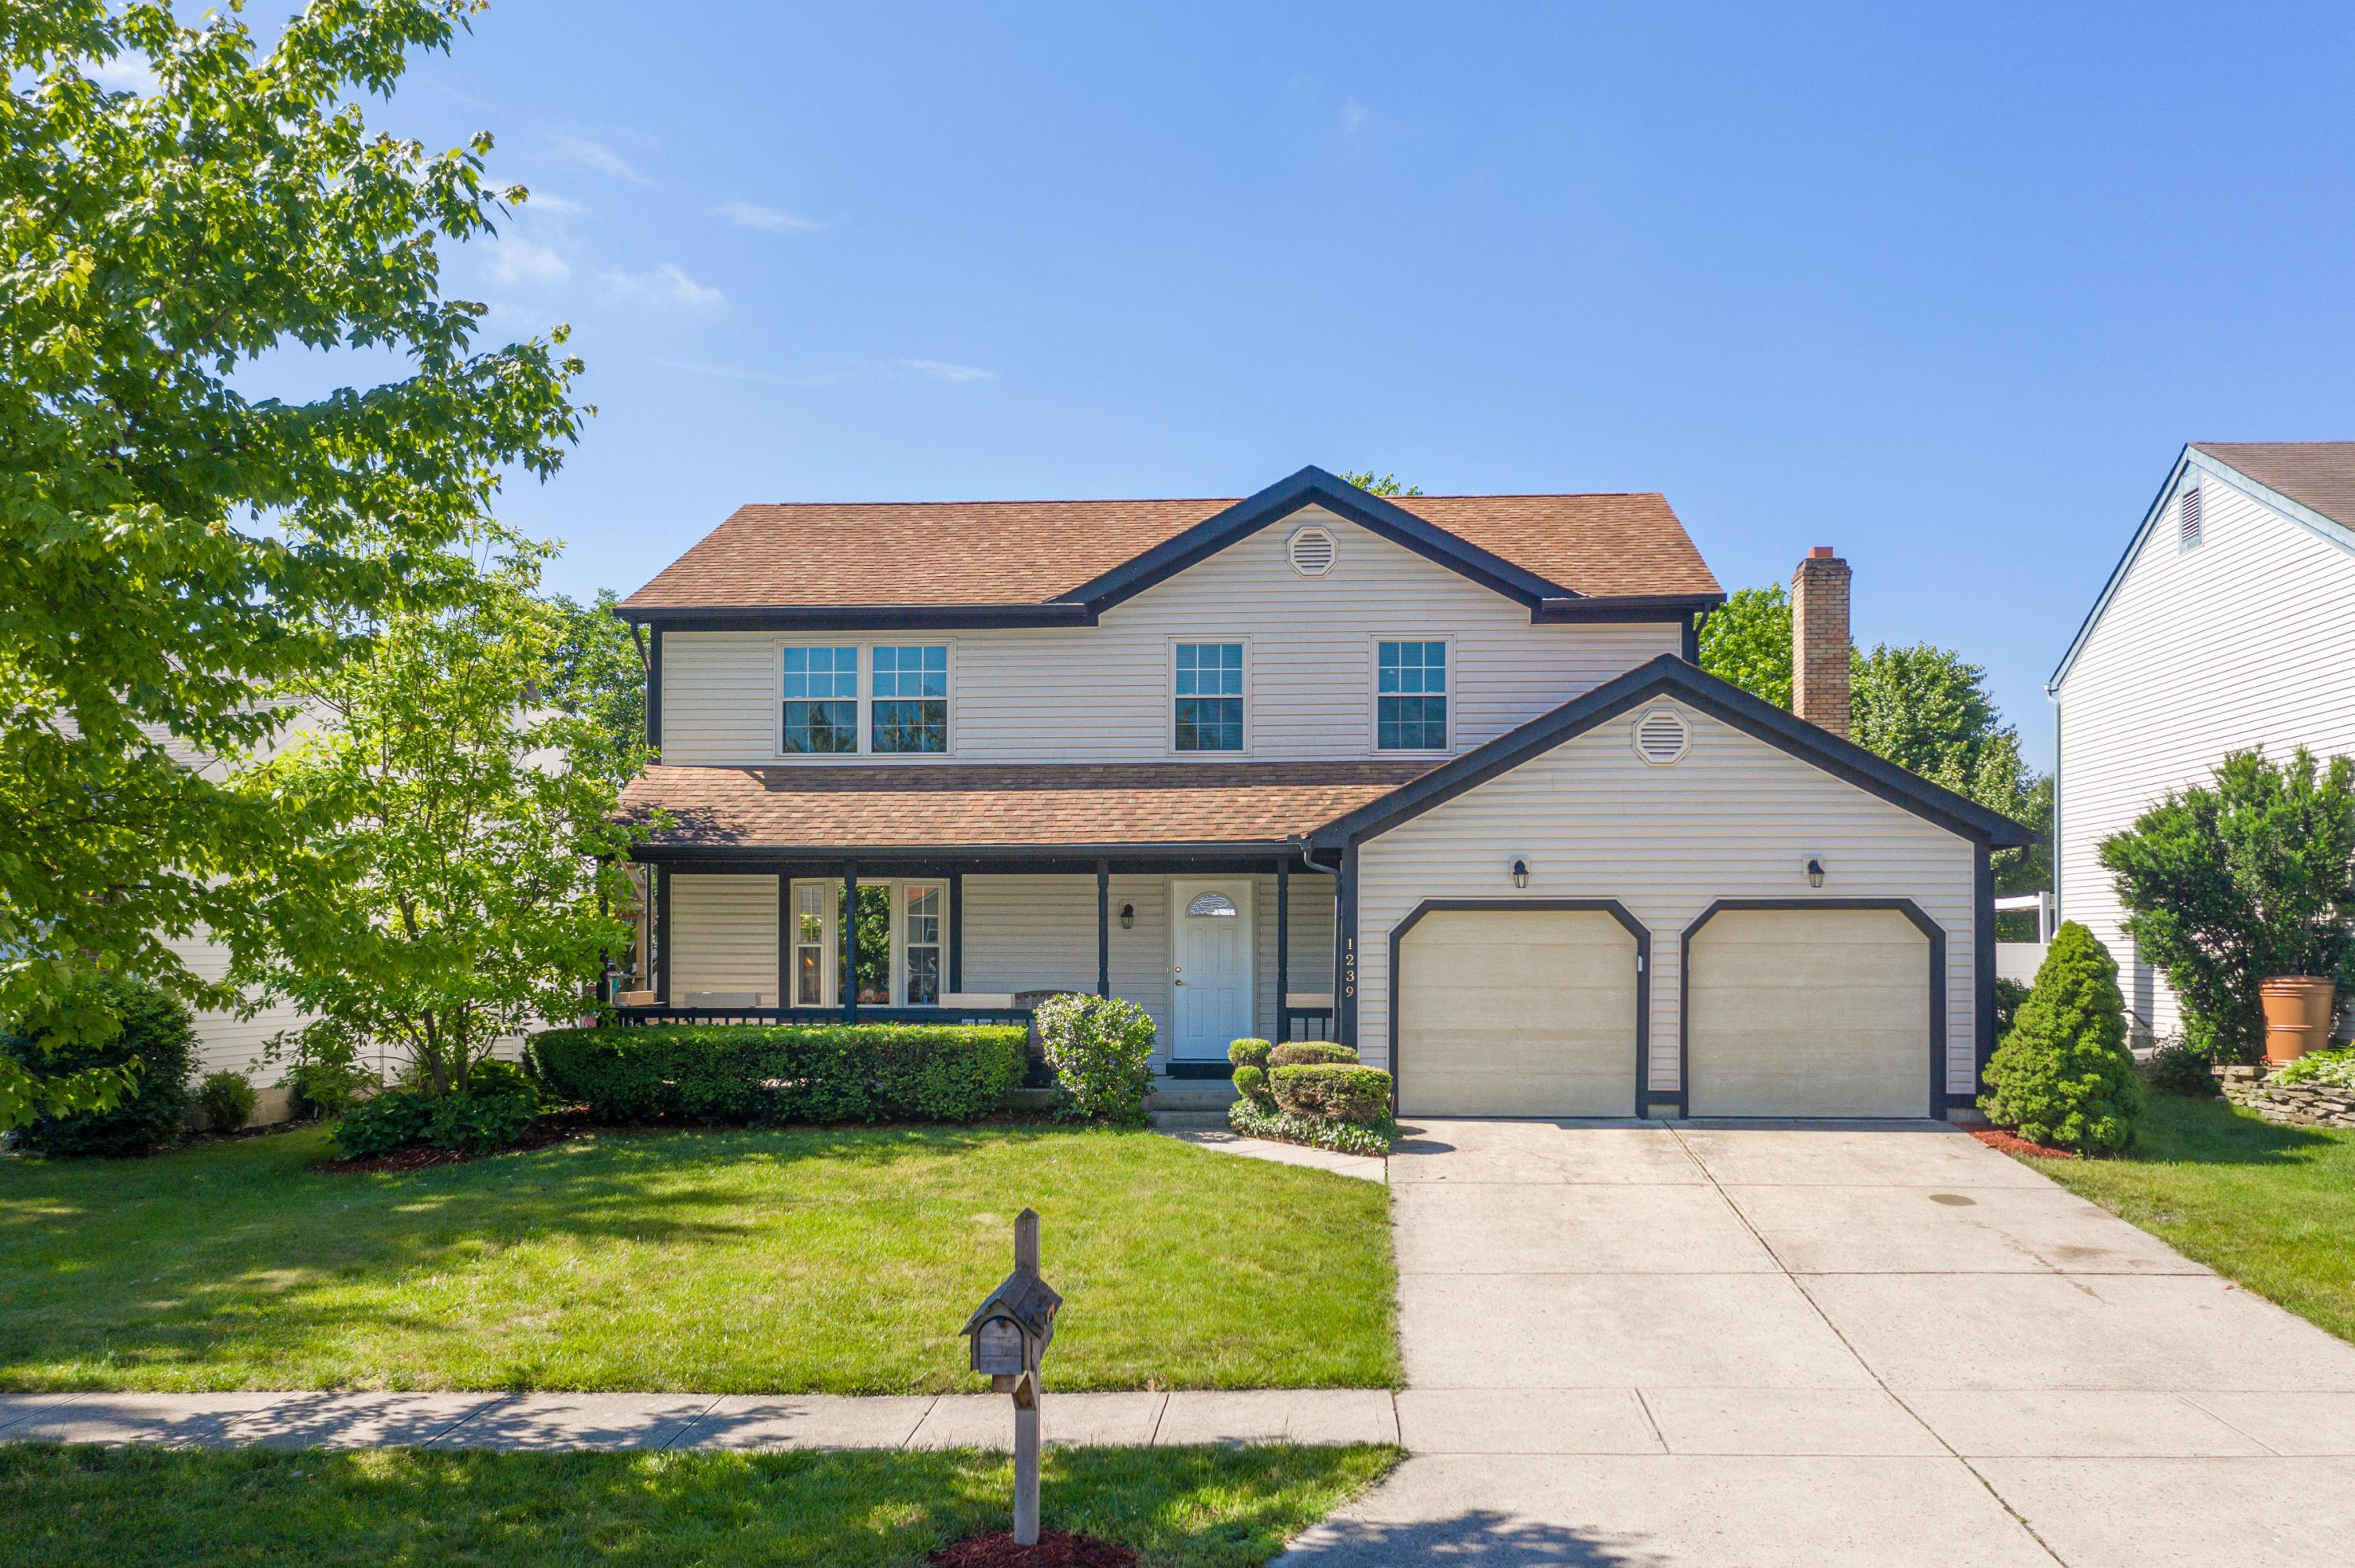 1239 Tranquil Drive, Worthington, Ohio 43085, 4 Bedrooms Bedrooms, ,3 BathroomsBathrooms,Residential,For Sale,Tranquil,220019679